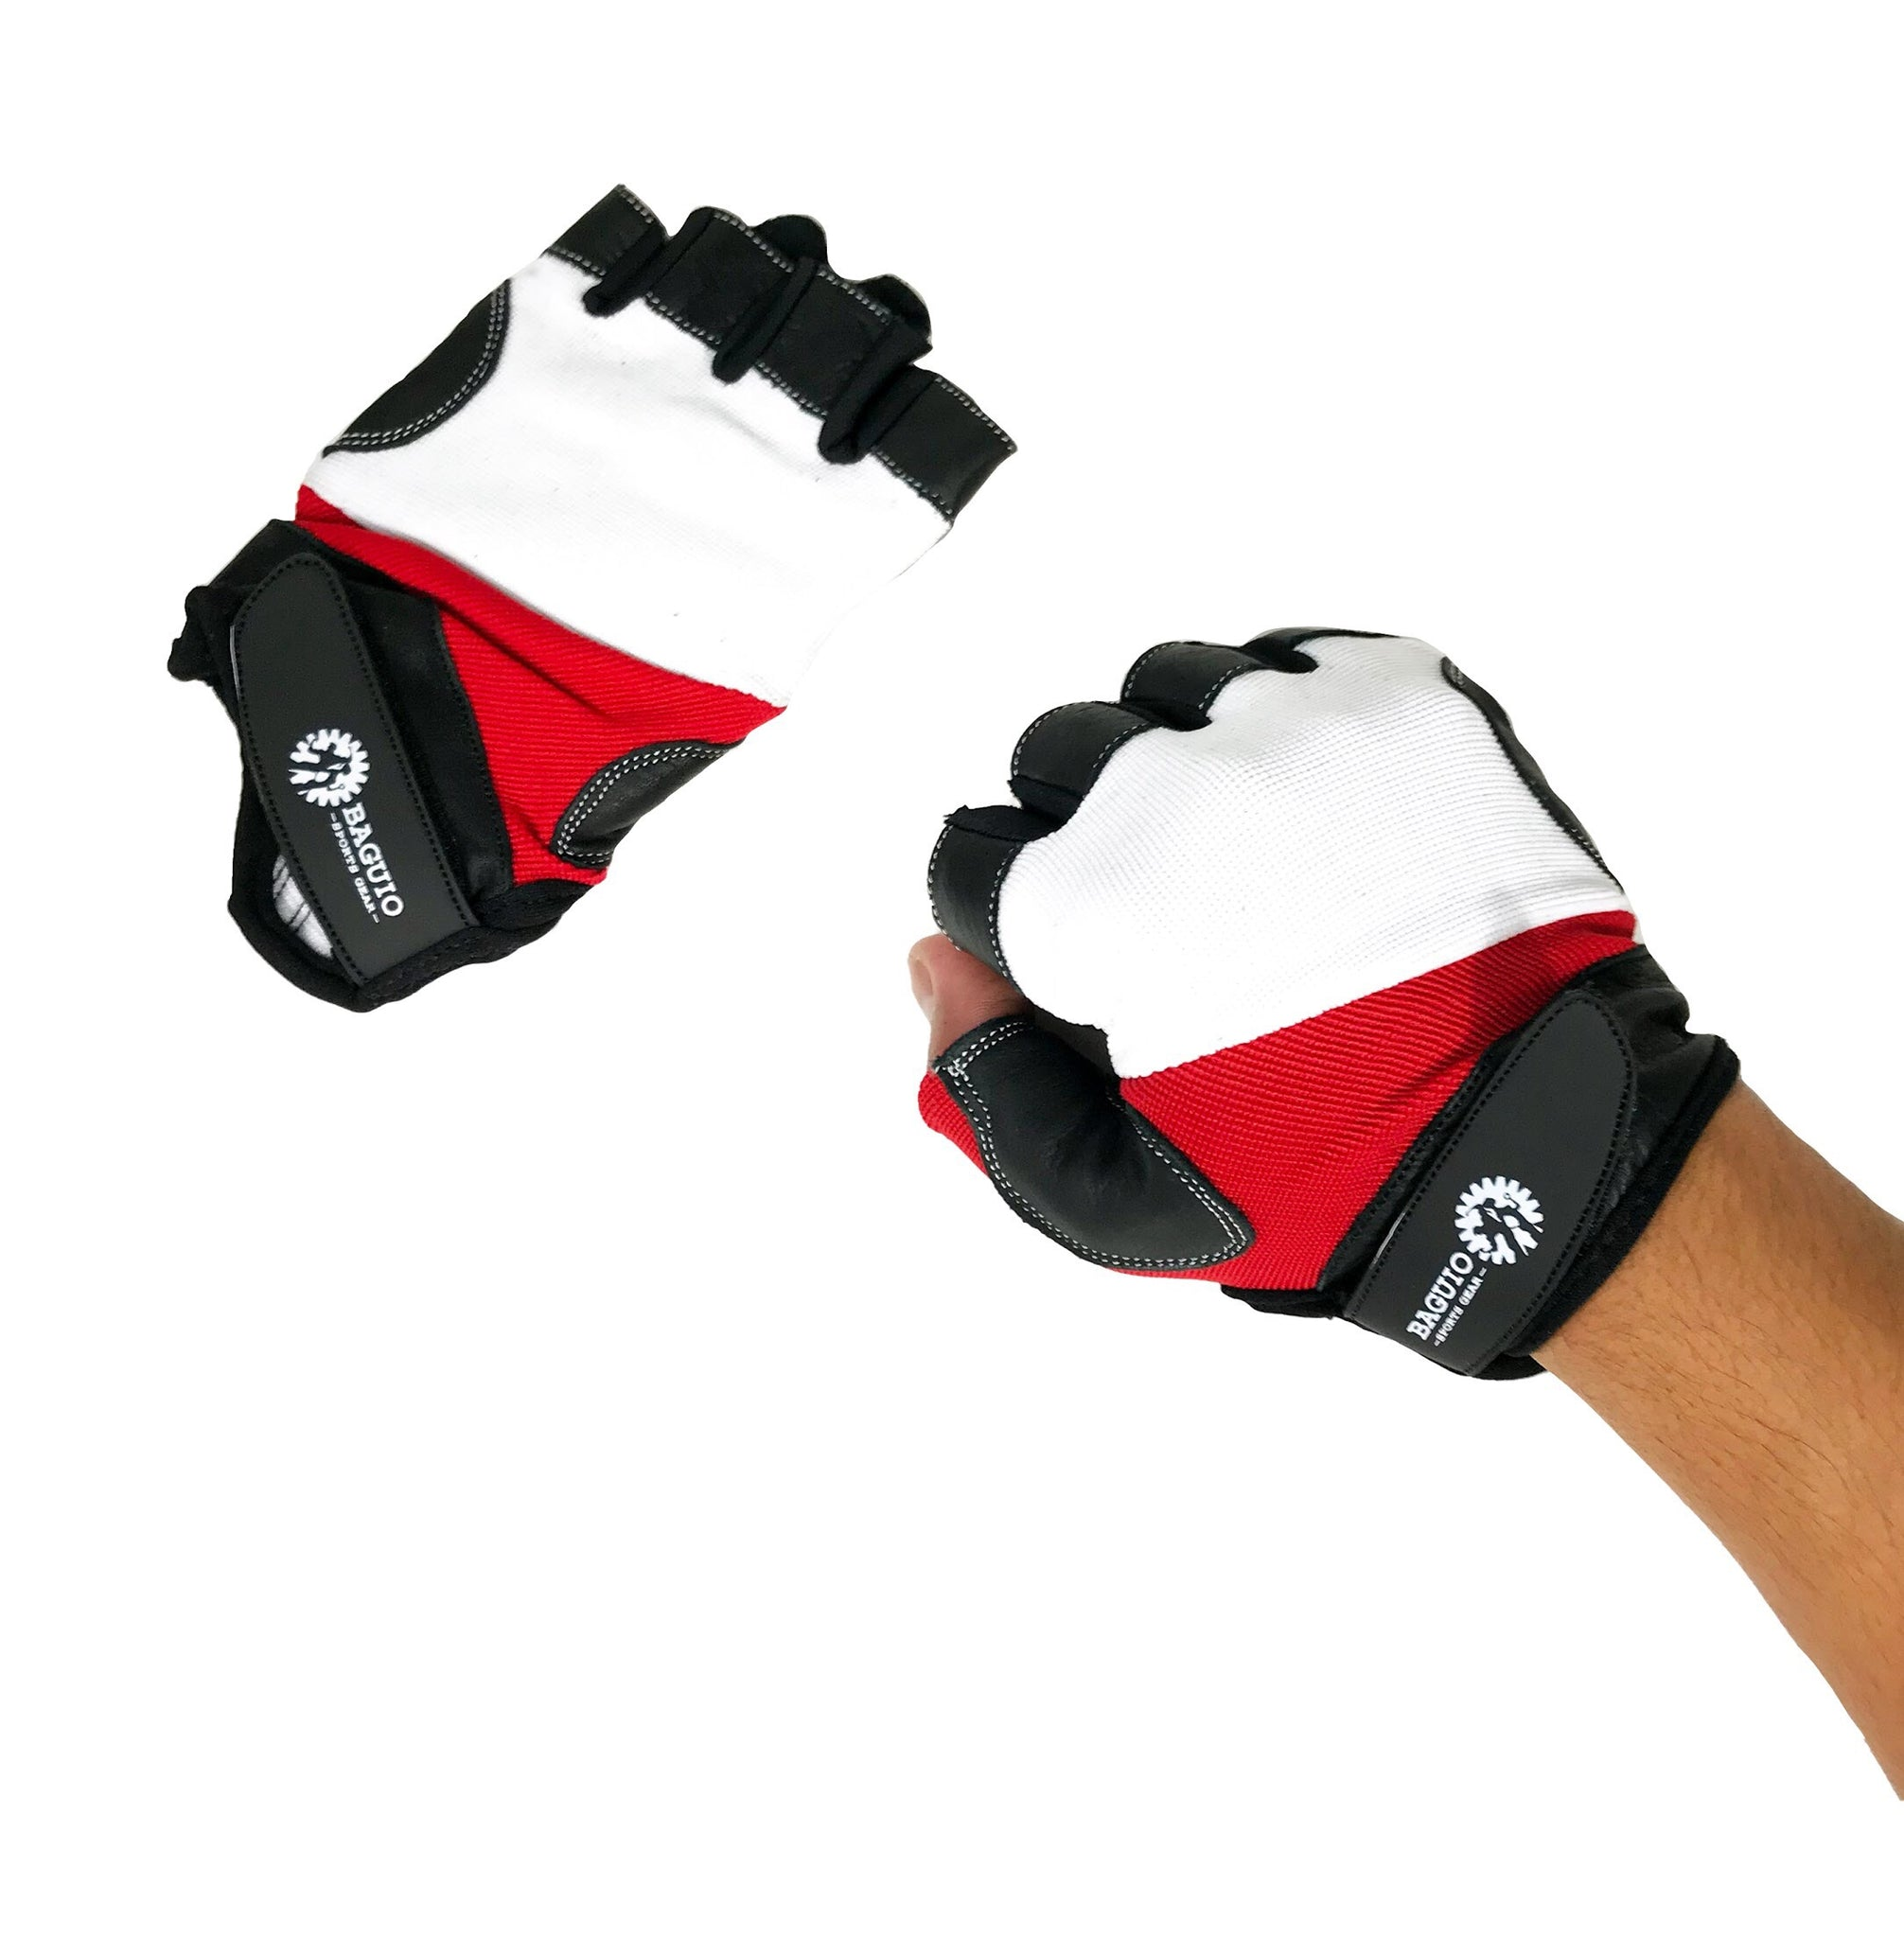 Baguio Sports Weightlifting  and Training Gloves black /red/white